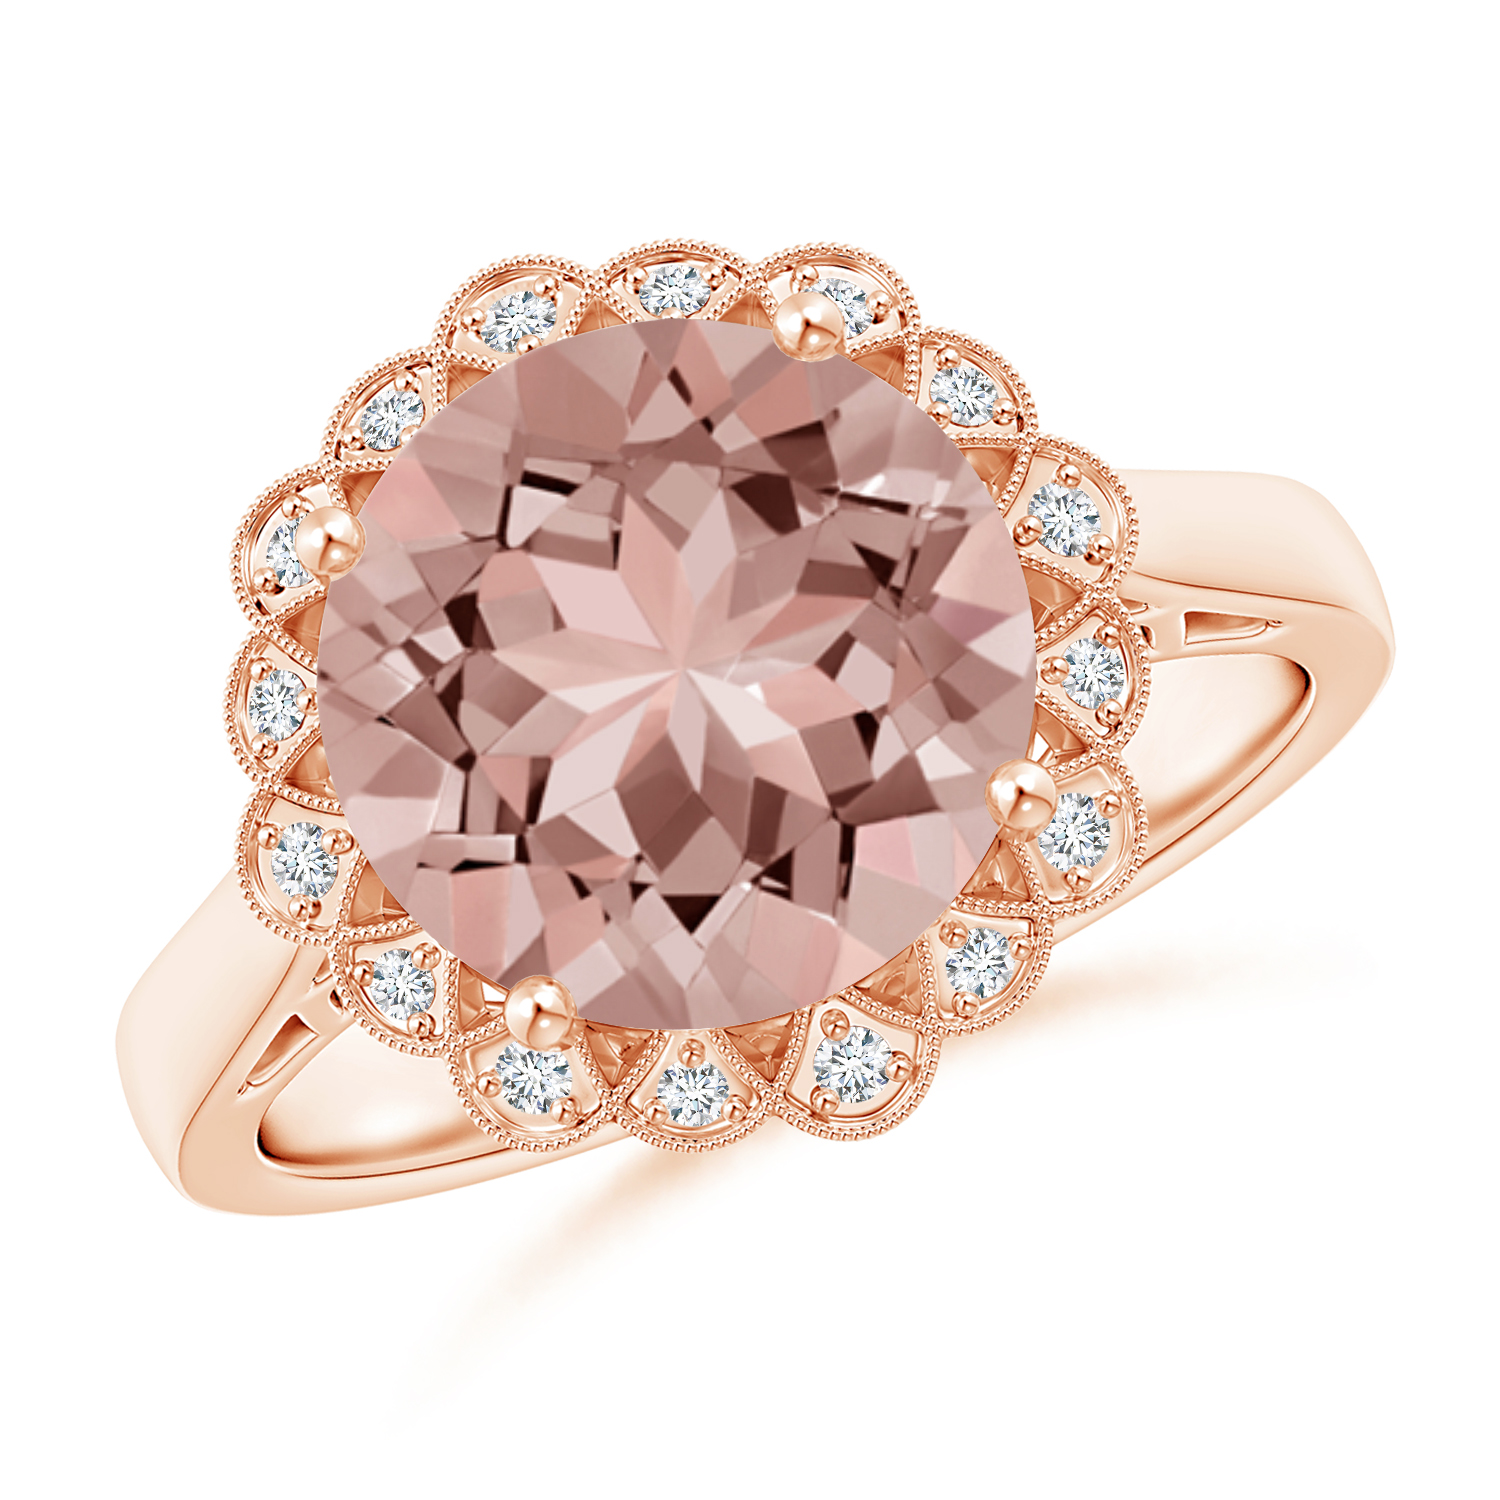 Vintage Style Morganite Cocktail Ring with Diamond Halo - Angara.com